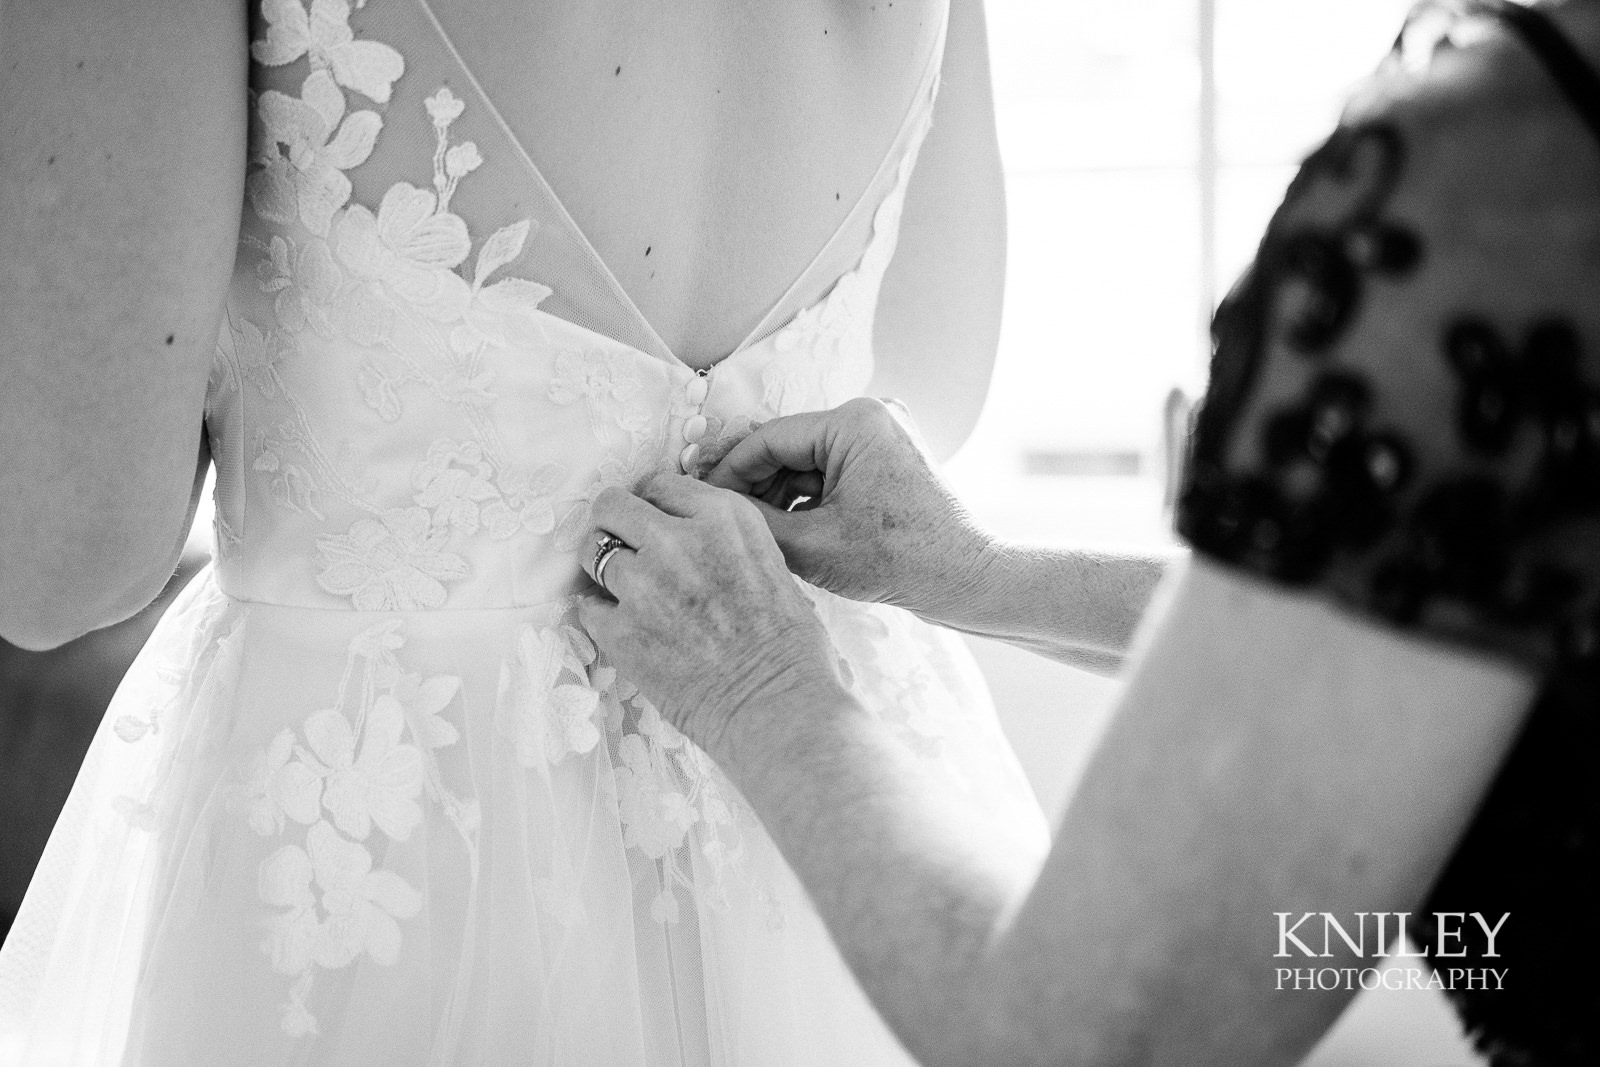 07-Lofts-on-Pearl-Hotel-Buffalo-NY-wedding-getting-ready-photo-Kniley-Photography.jpg